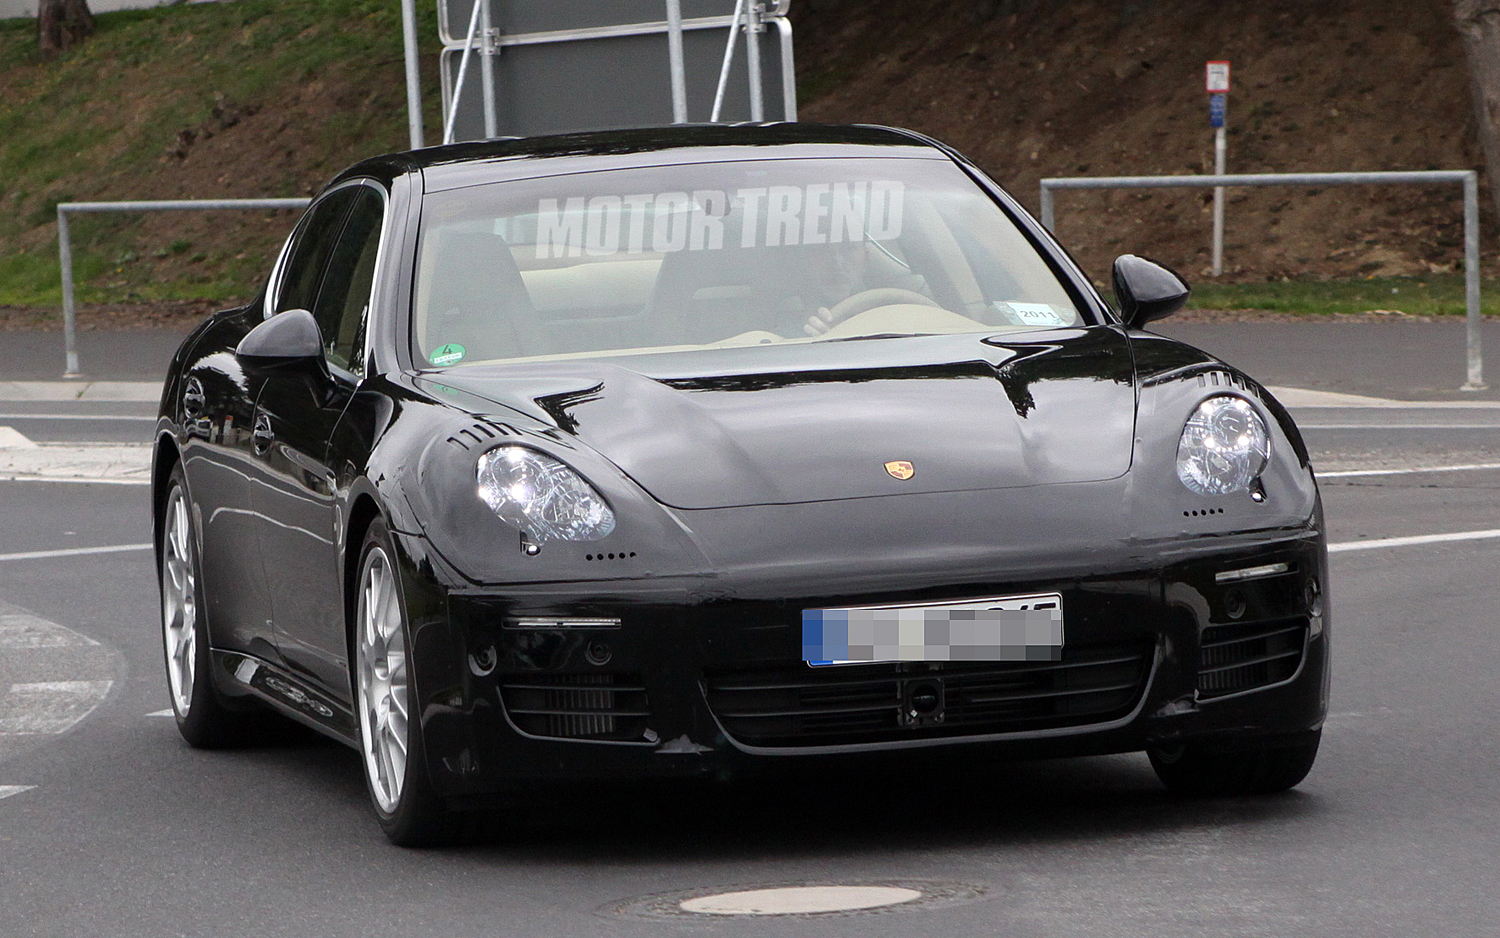 2012 Porsche Panamera facelift Front angle view